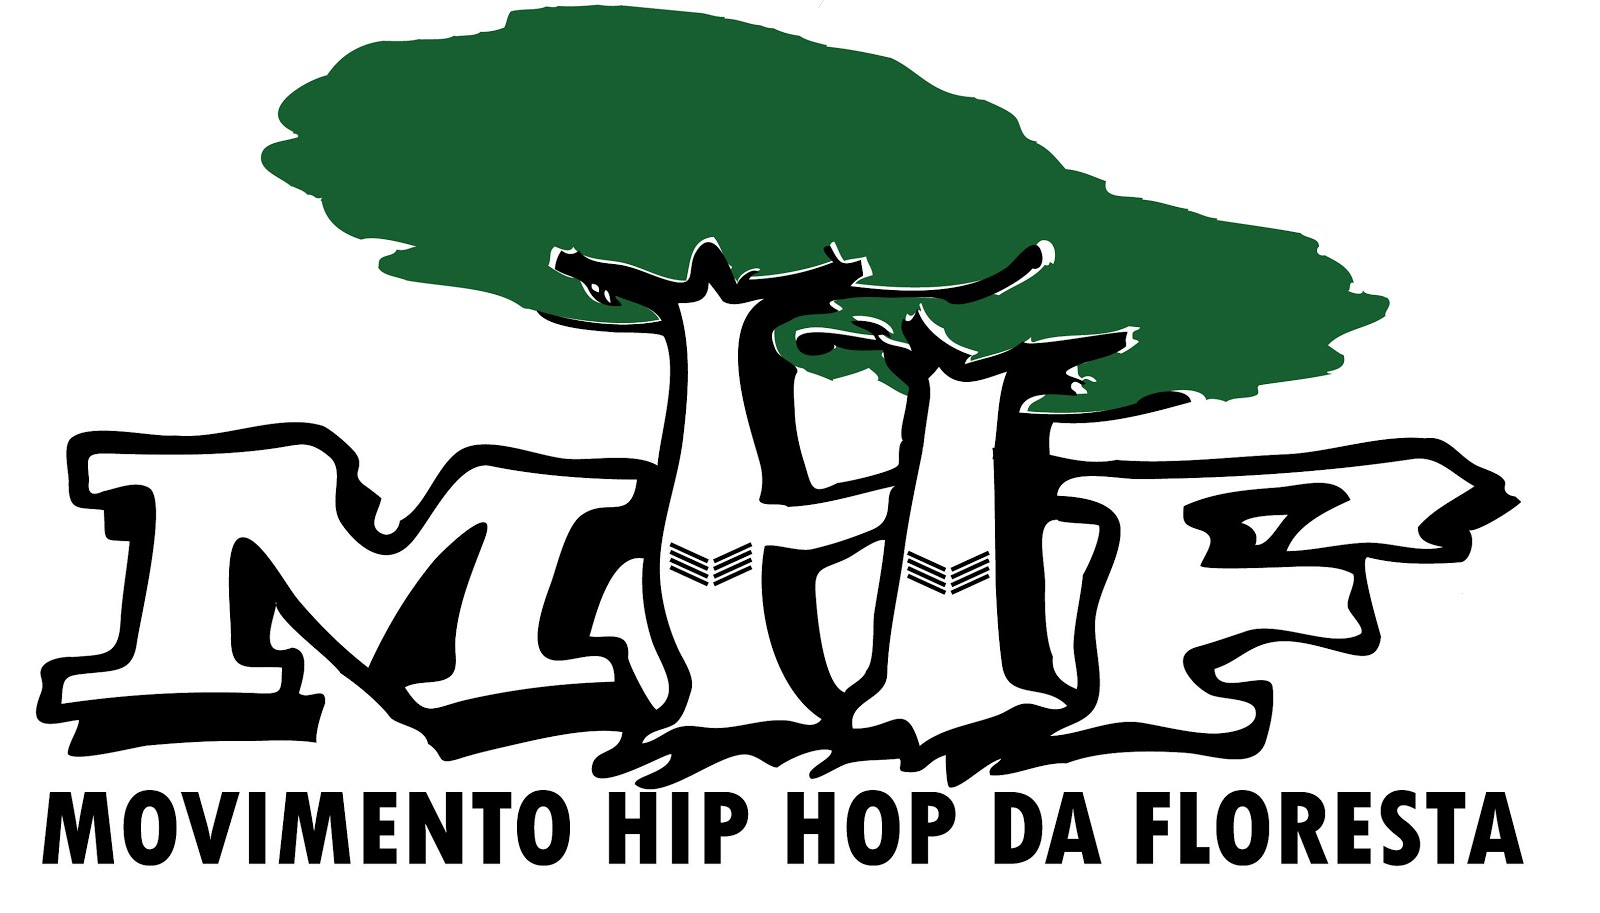 Movimento Hip - Hop da Floresta